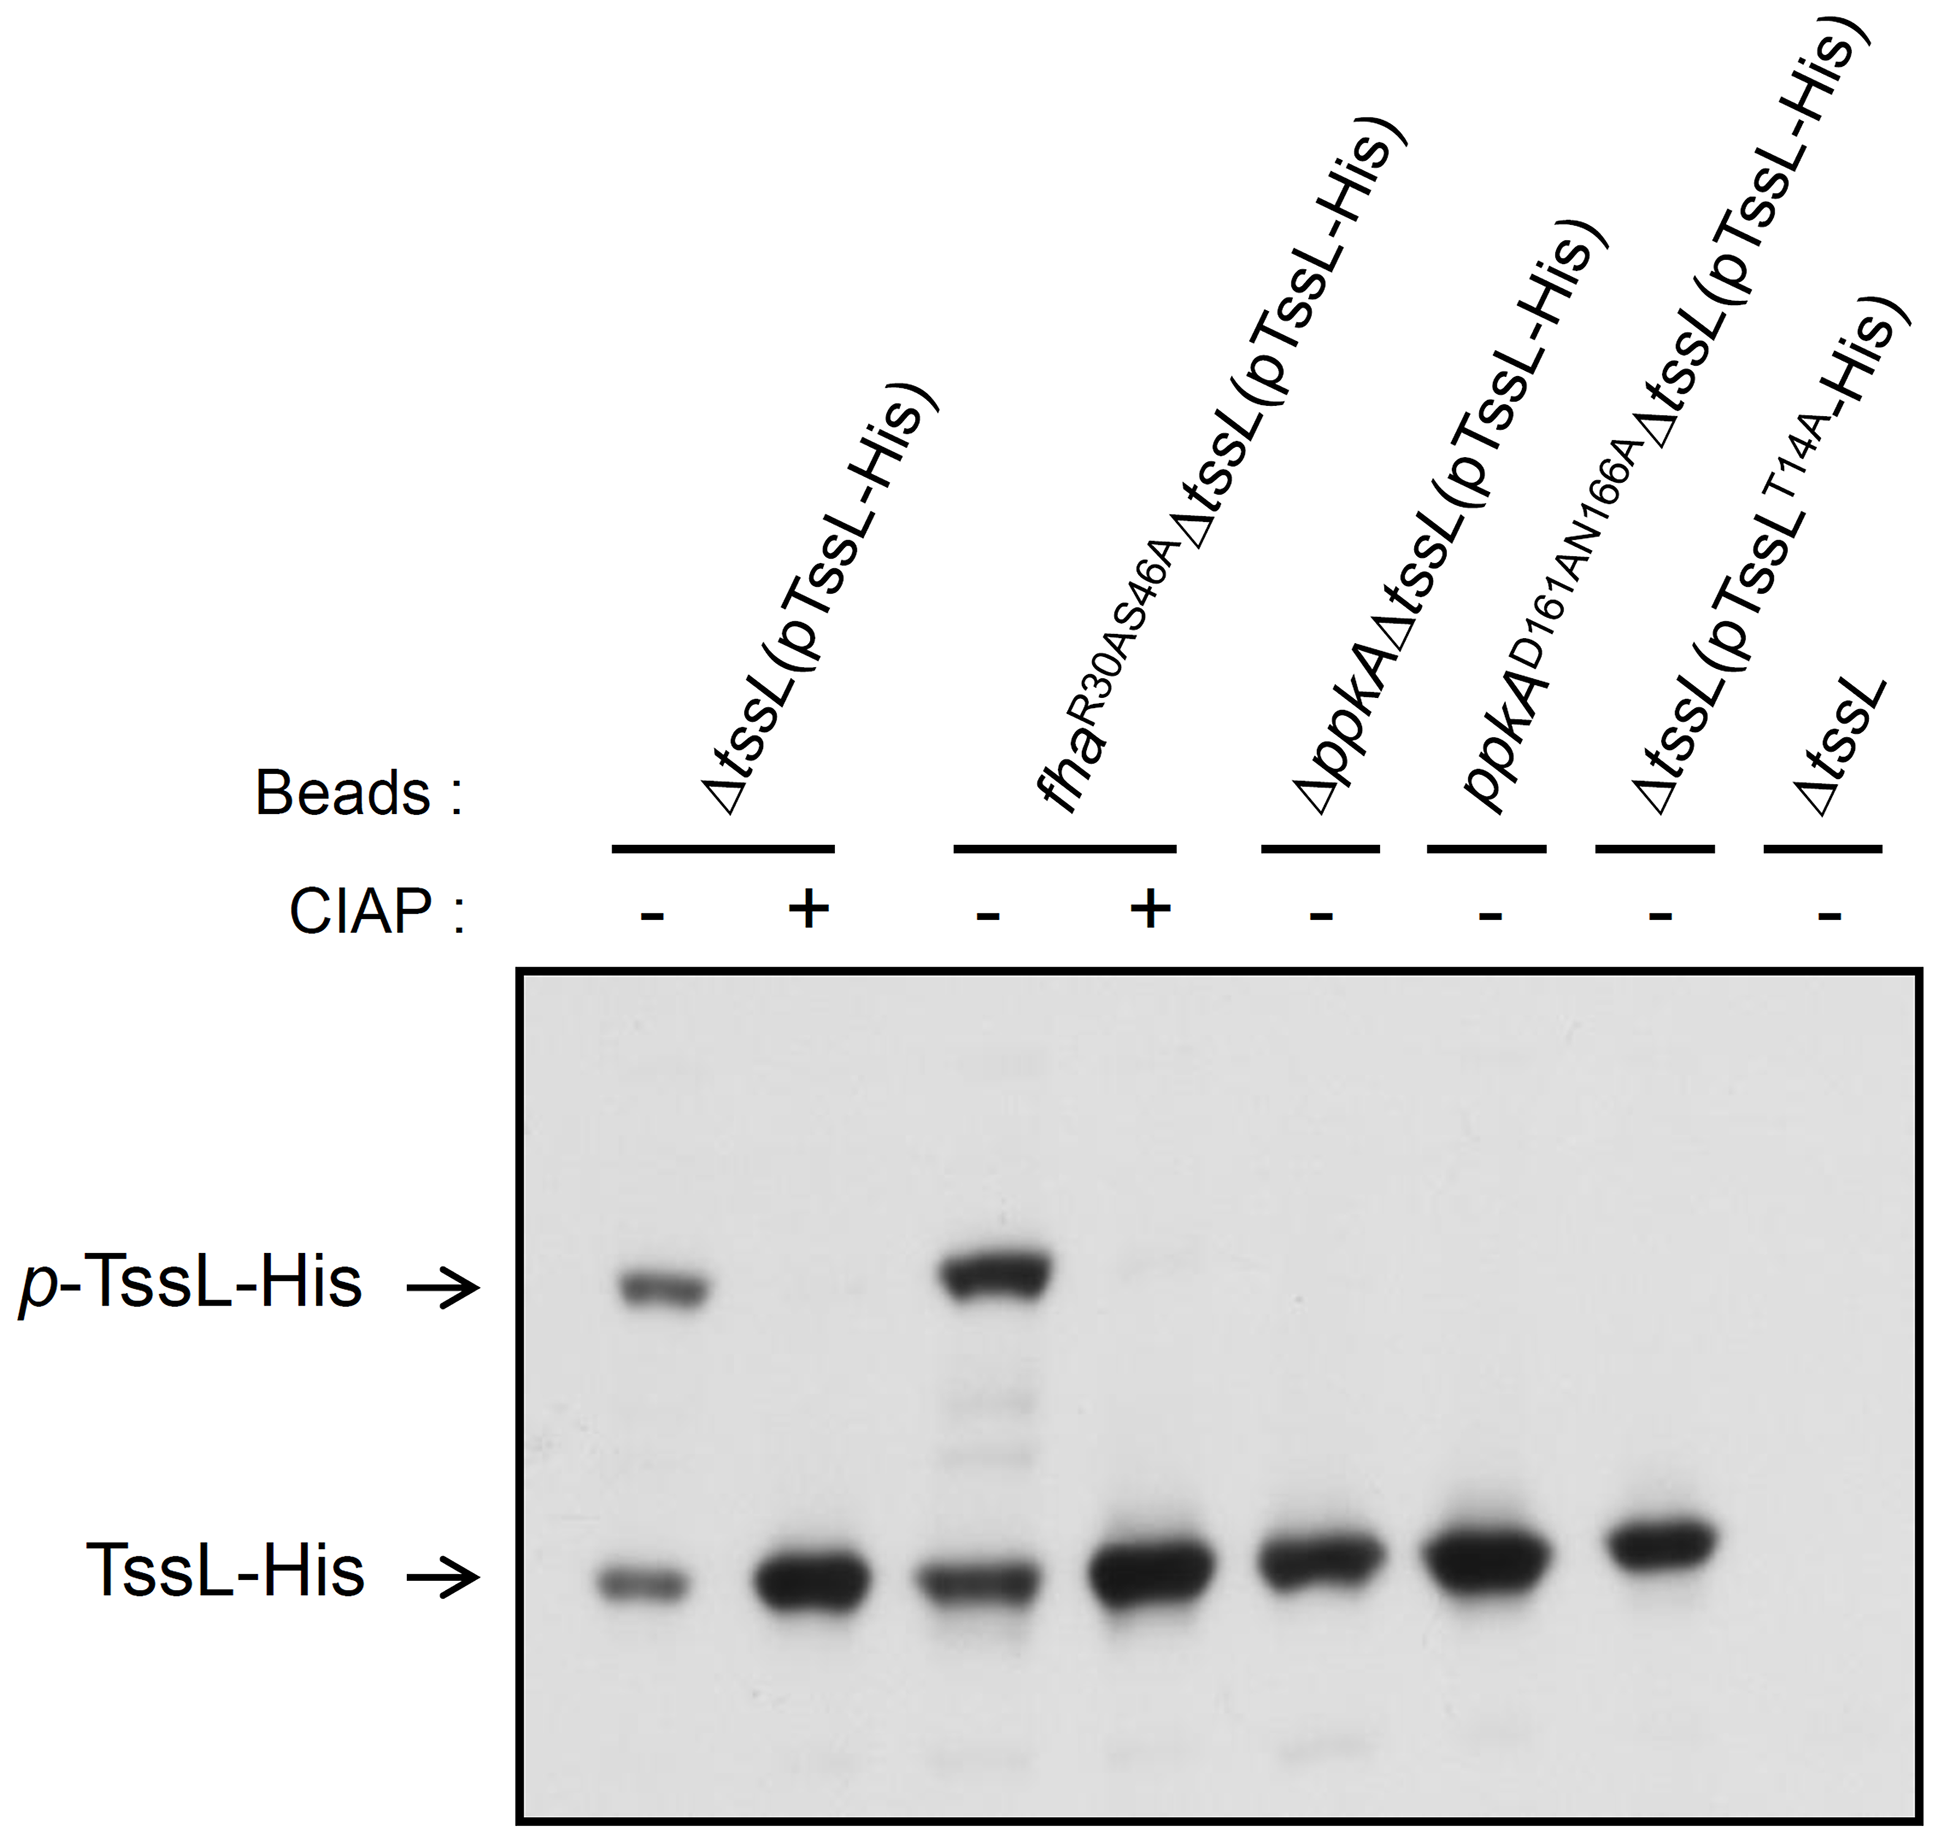 Phos-tag SDS-PAGE for TssL phosphorylation analysis in various mutants.